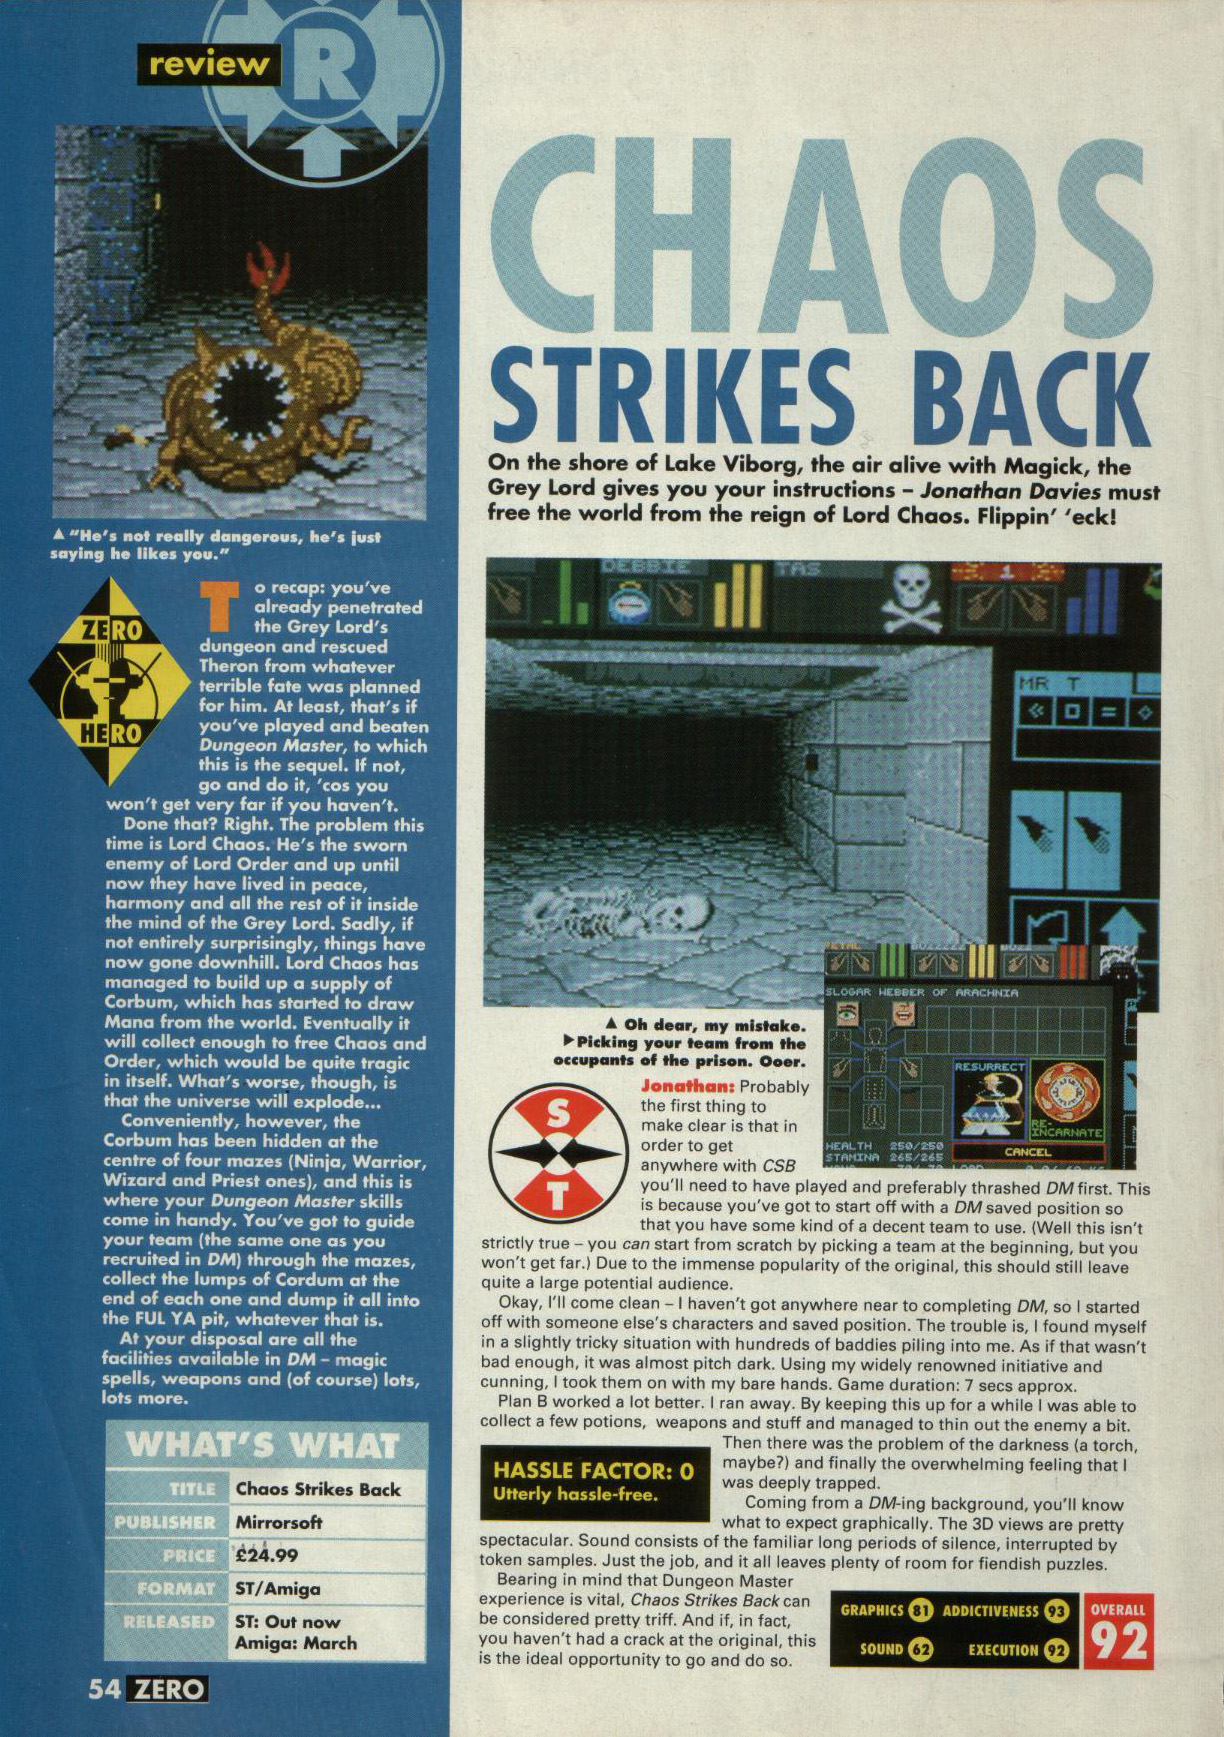 Chaos Strikes Back for Atari ST Review published in British magazine 'Zero', Issue #4, February 1990, Page 54